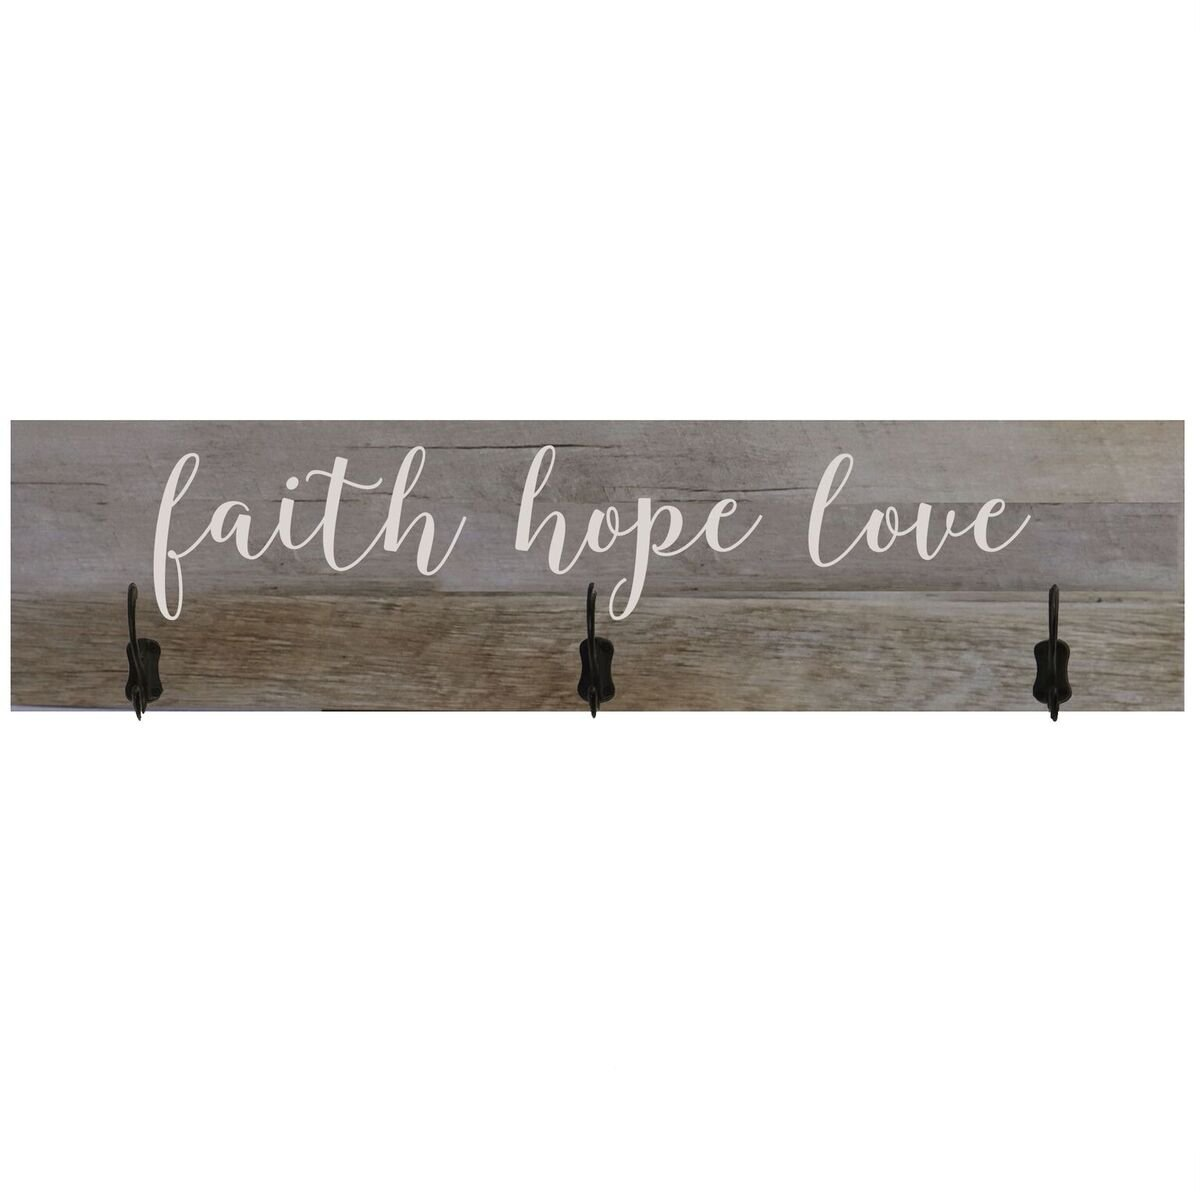 LifeSong Milestones Barnwood Coat Rack Faith Hope Love Wall Signs for Home, Wedding, Anniversary, Living Room, Entryway, Kitchen (Faith Hope Love)